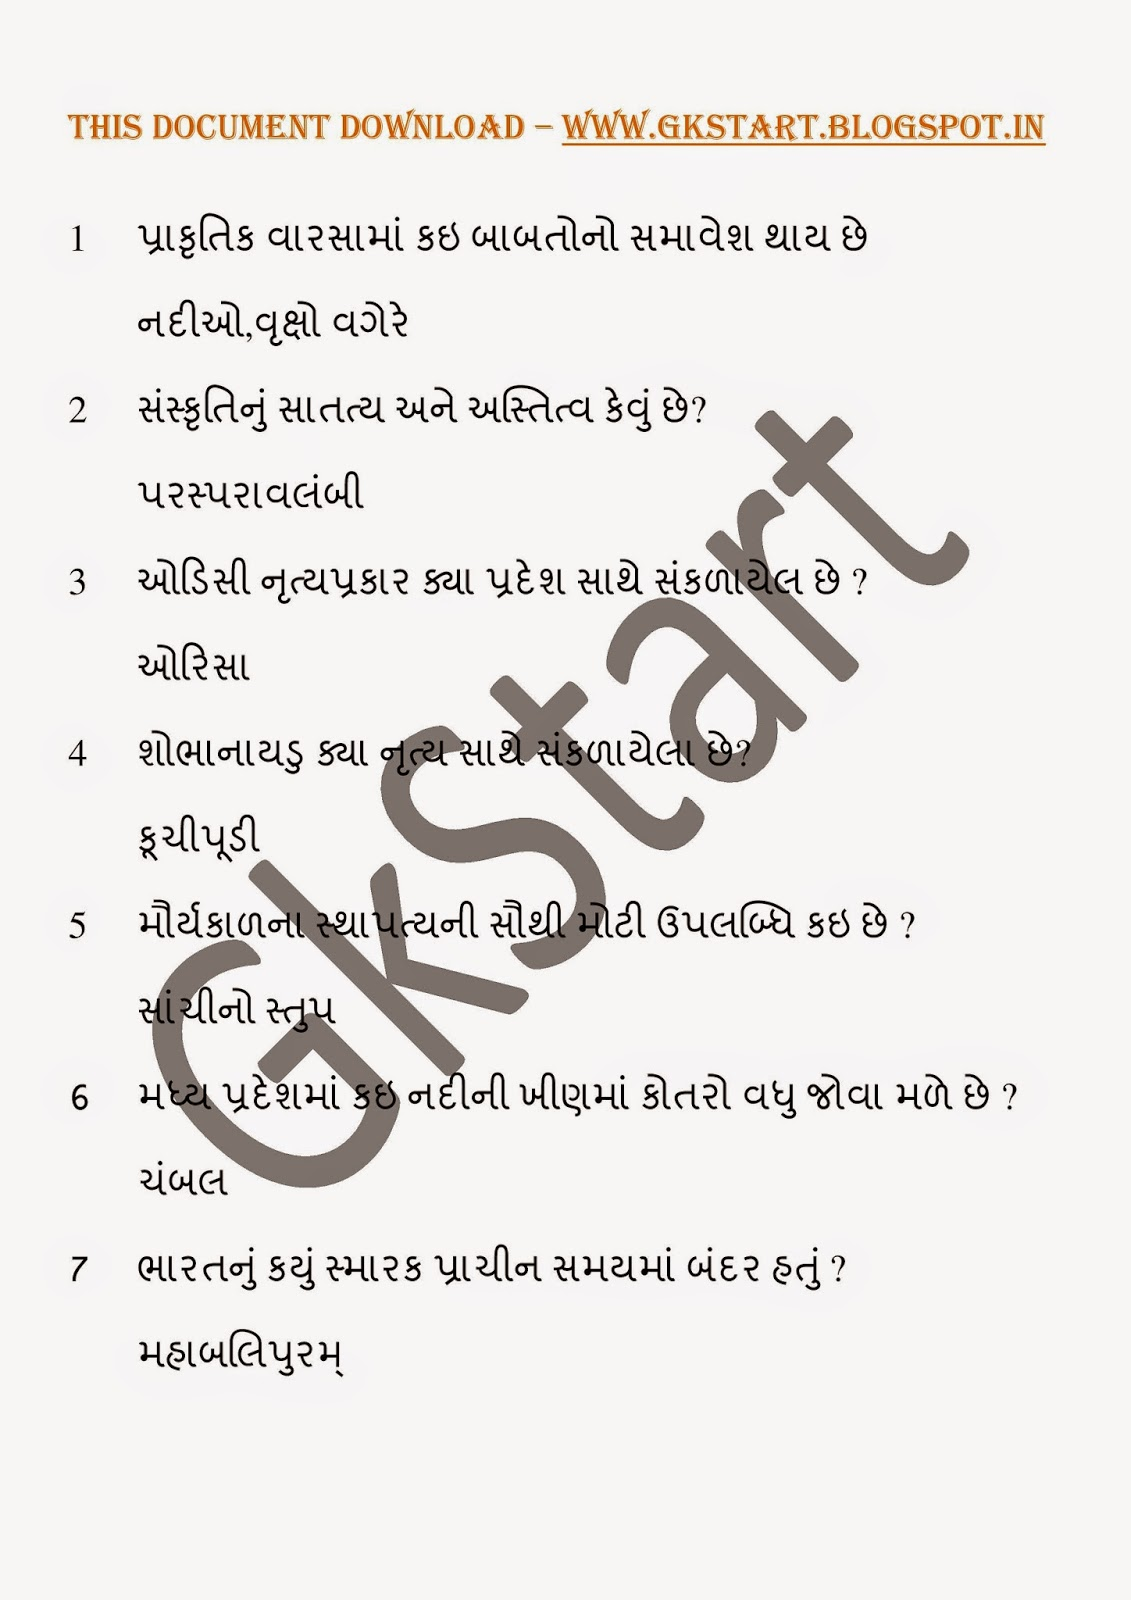 General Knowledge Pdf File